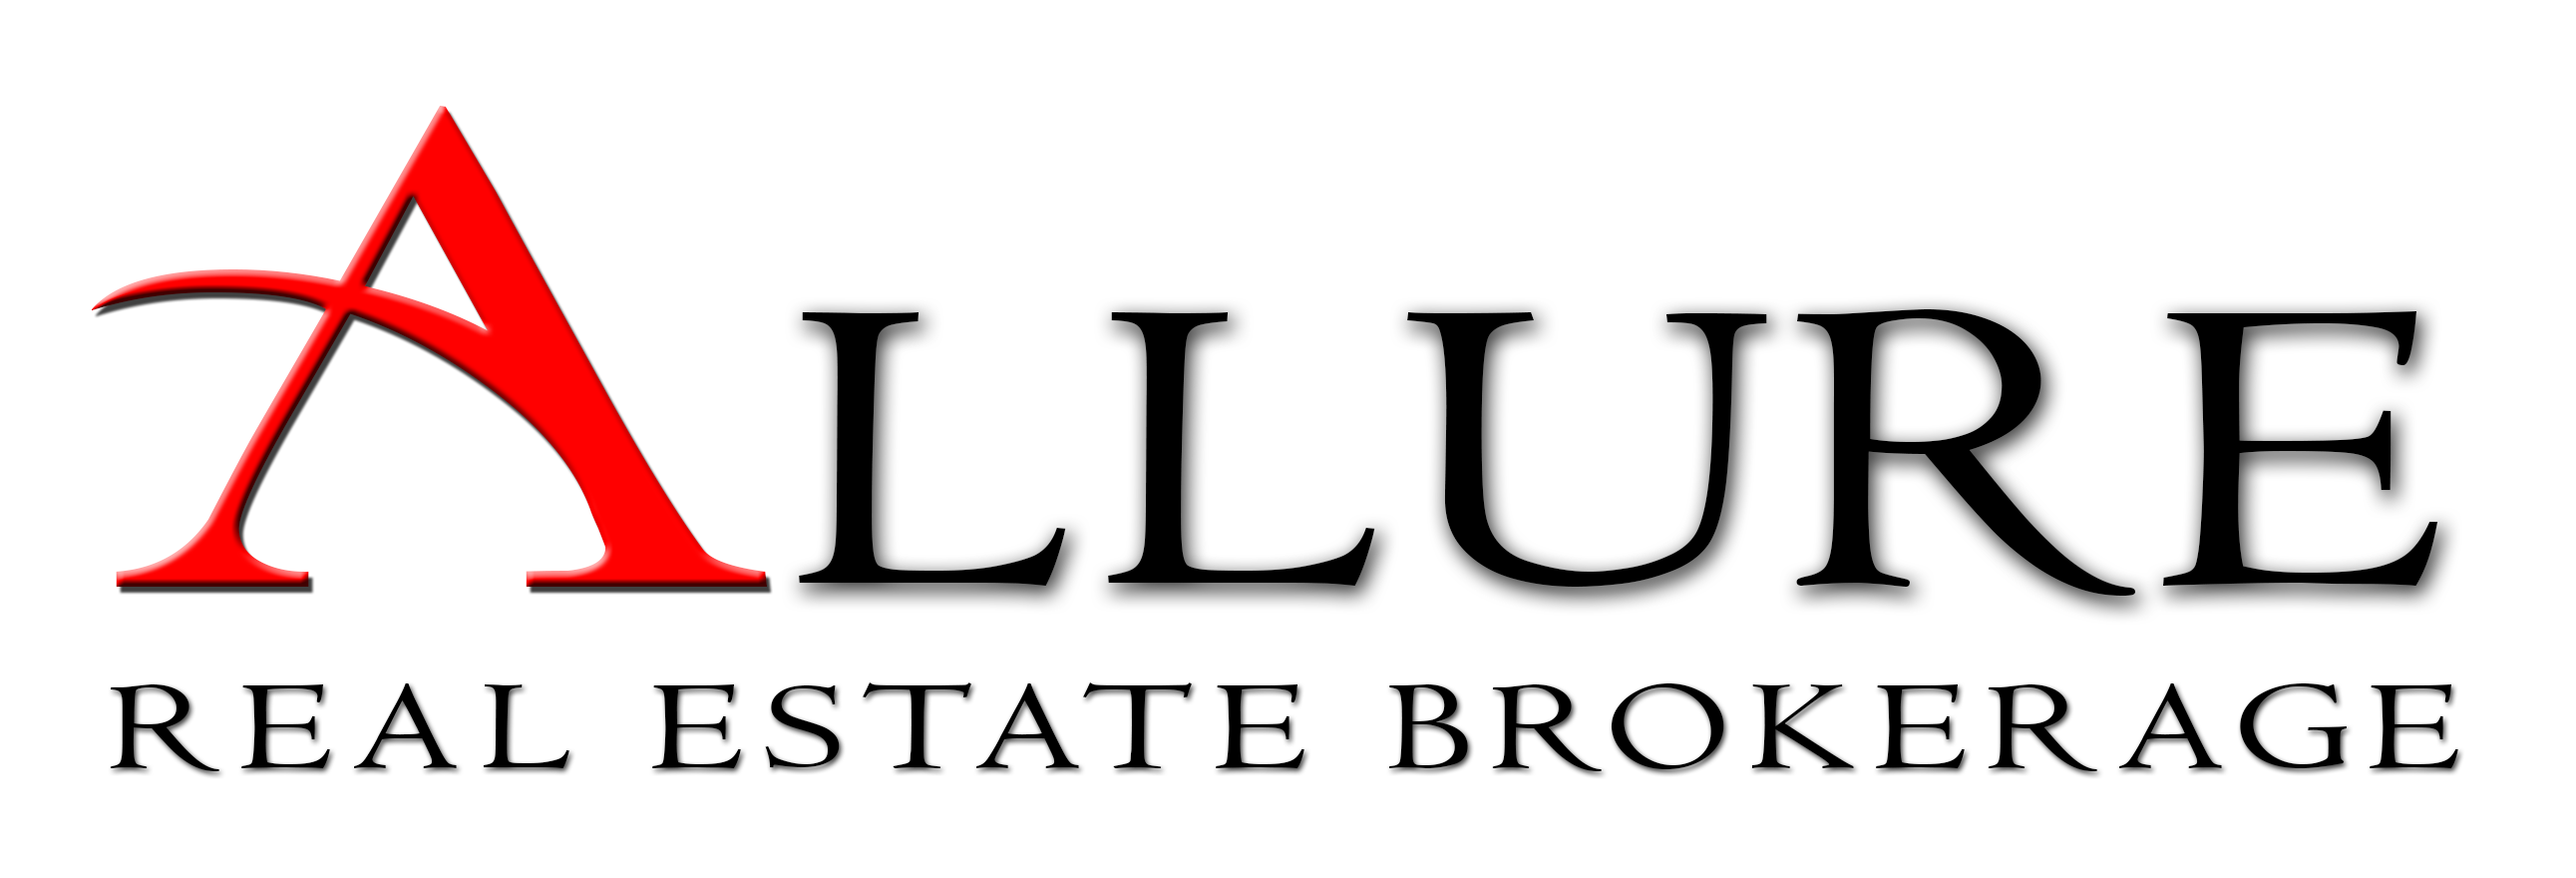 Zachary Miller- Allure Real Estate Brokerage